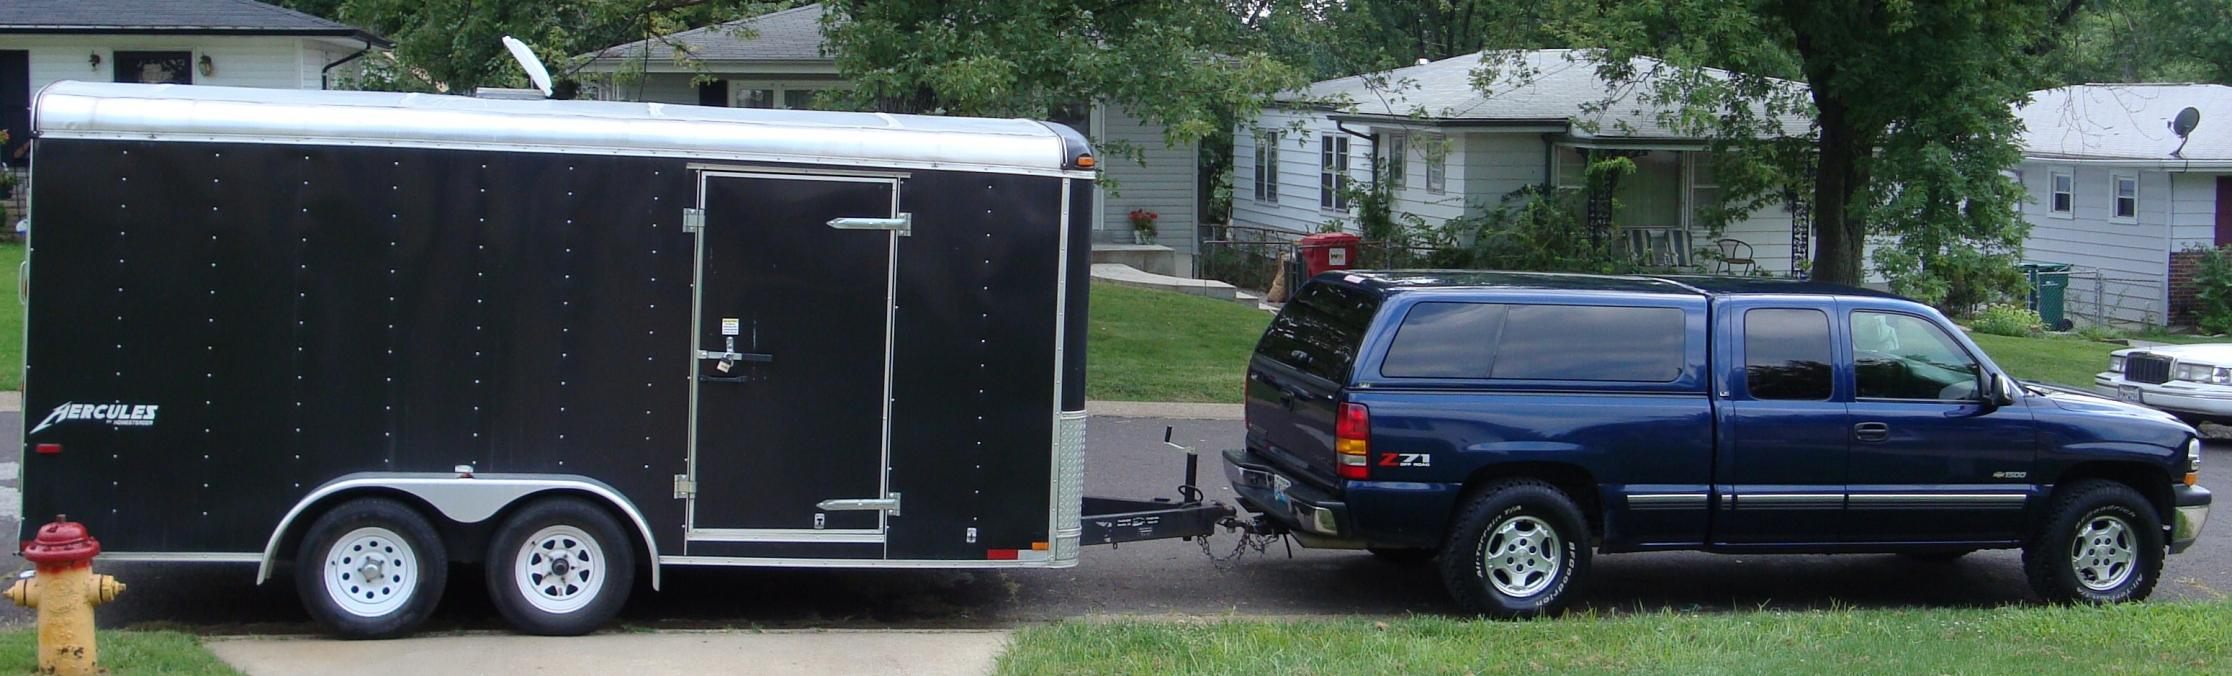 Job site trailers, show off your set ups!-098.jpg